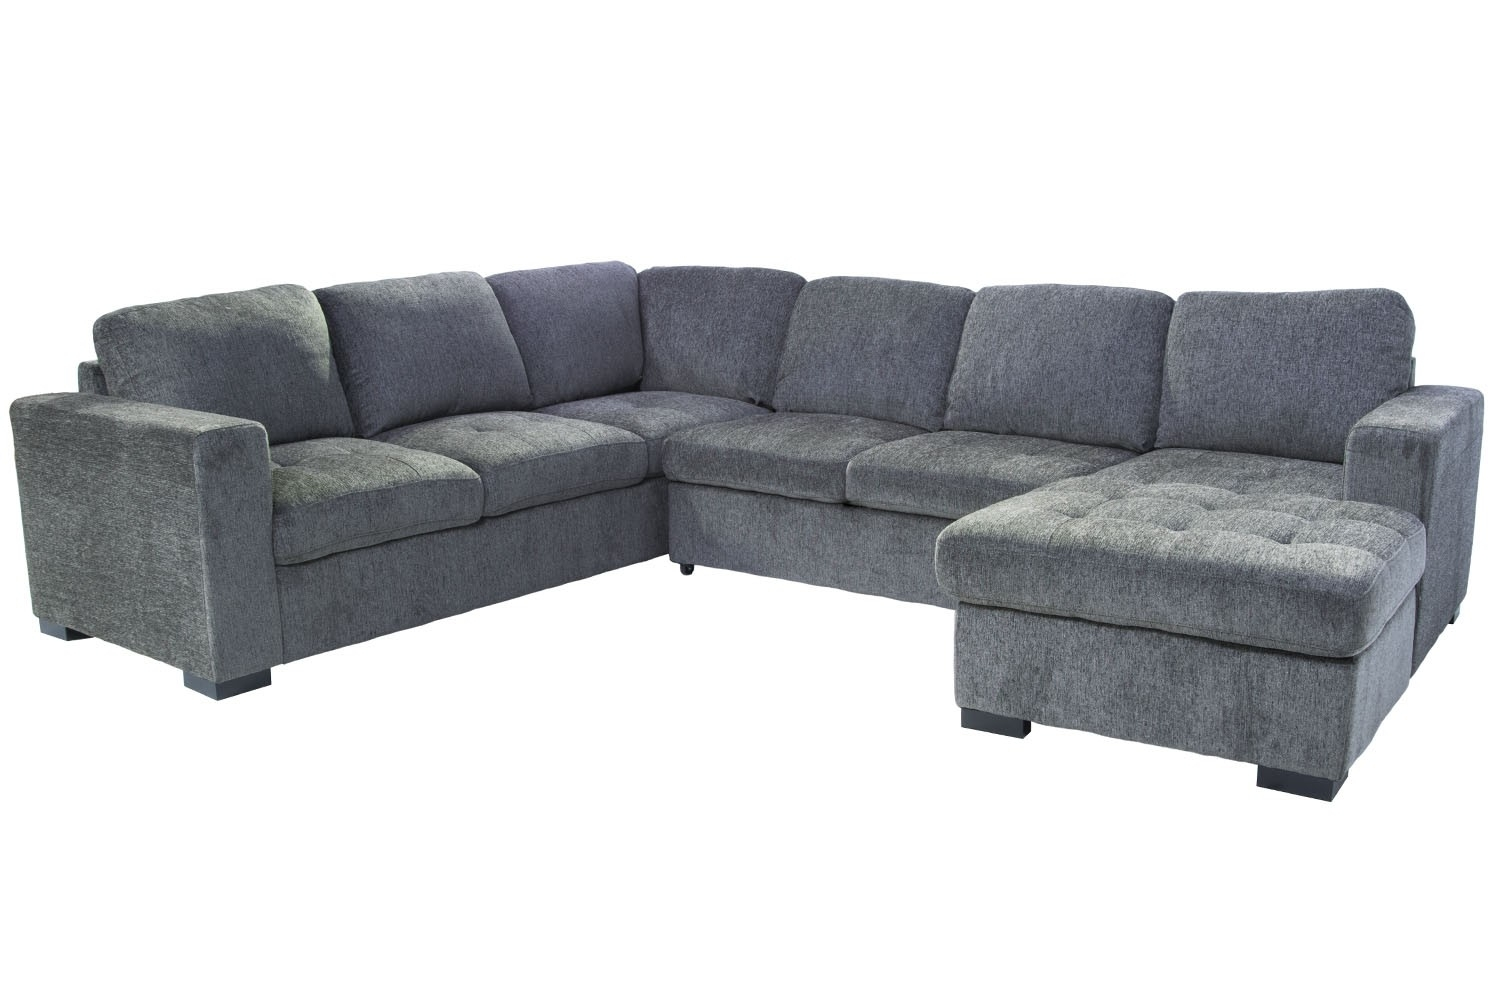 Sectional Sofas | Save Mor Online And In Store For Waylon 3 Piece Power Reclining Sectionals (Image 15 of 25)